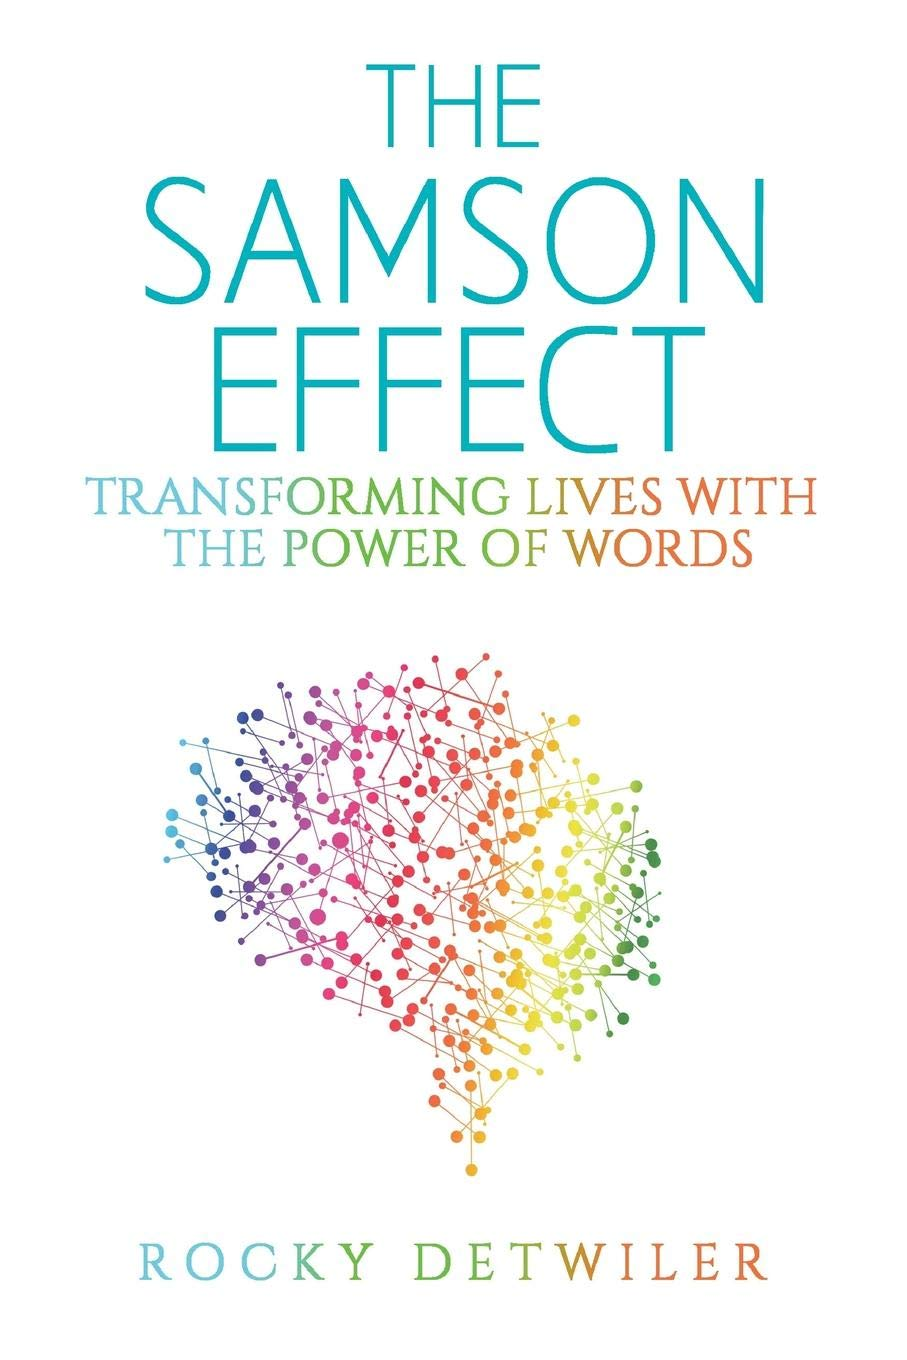 The Samson Effect: Transforming Lives with the Power of Words